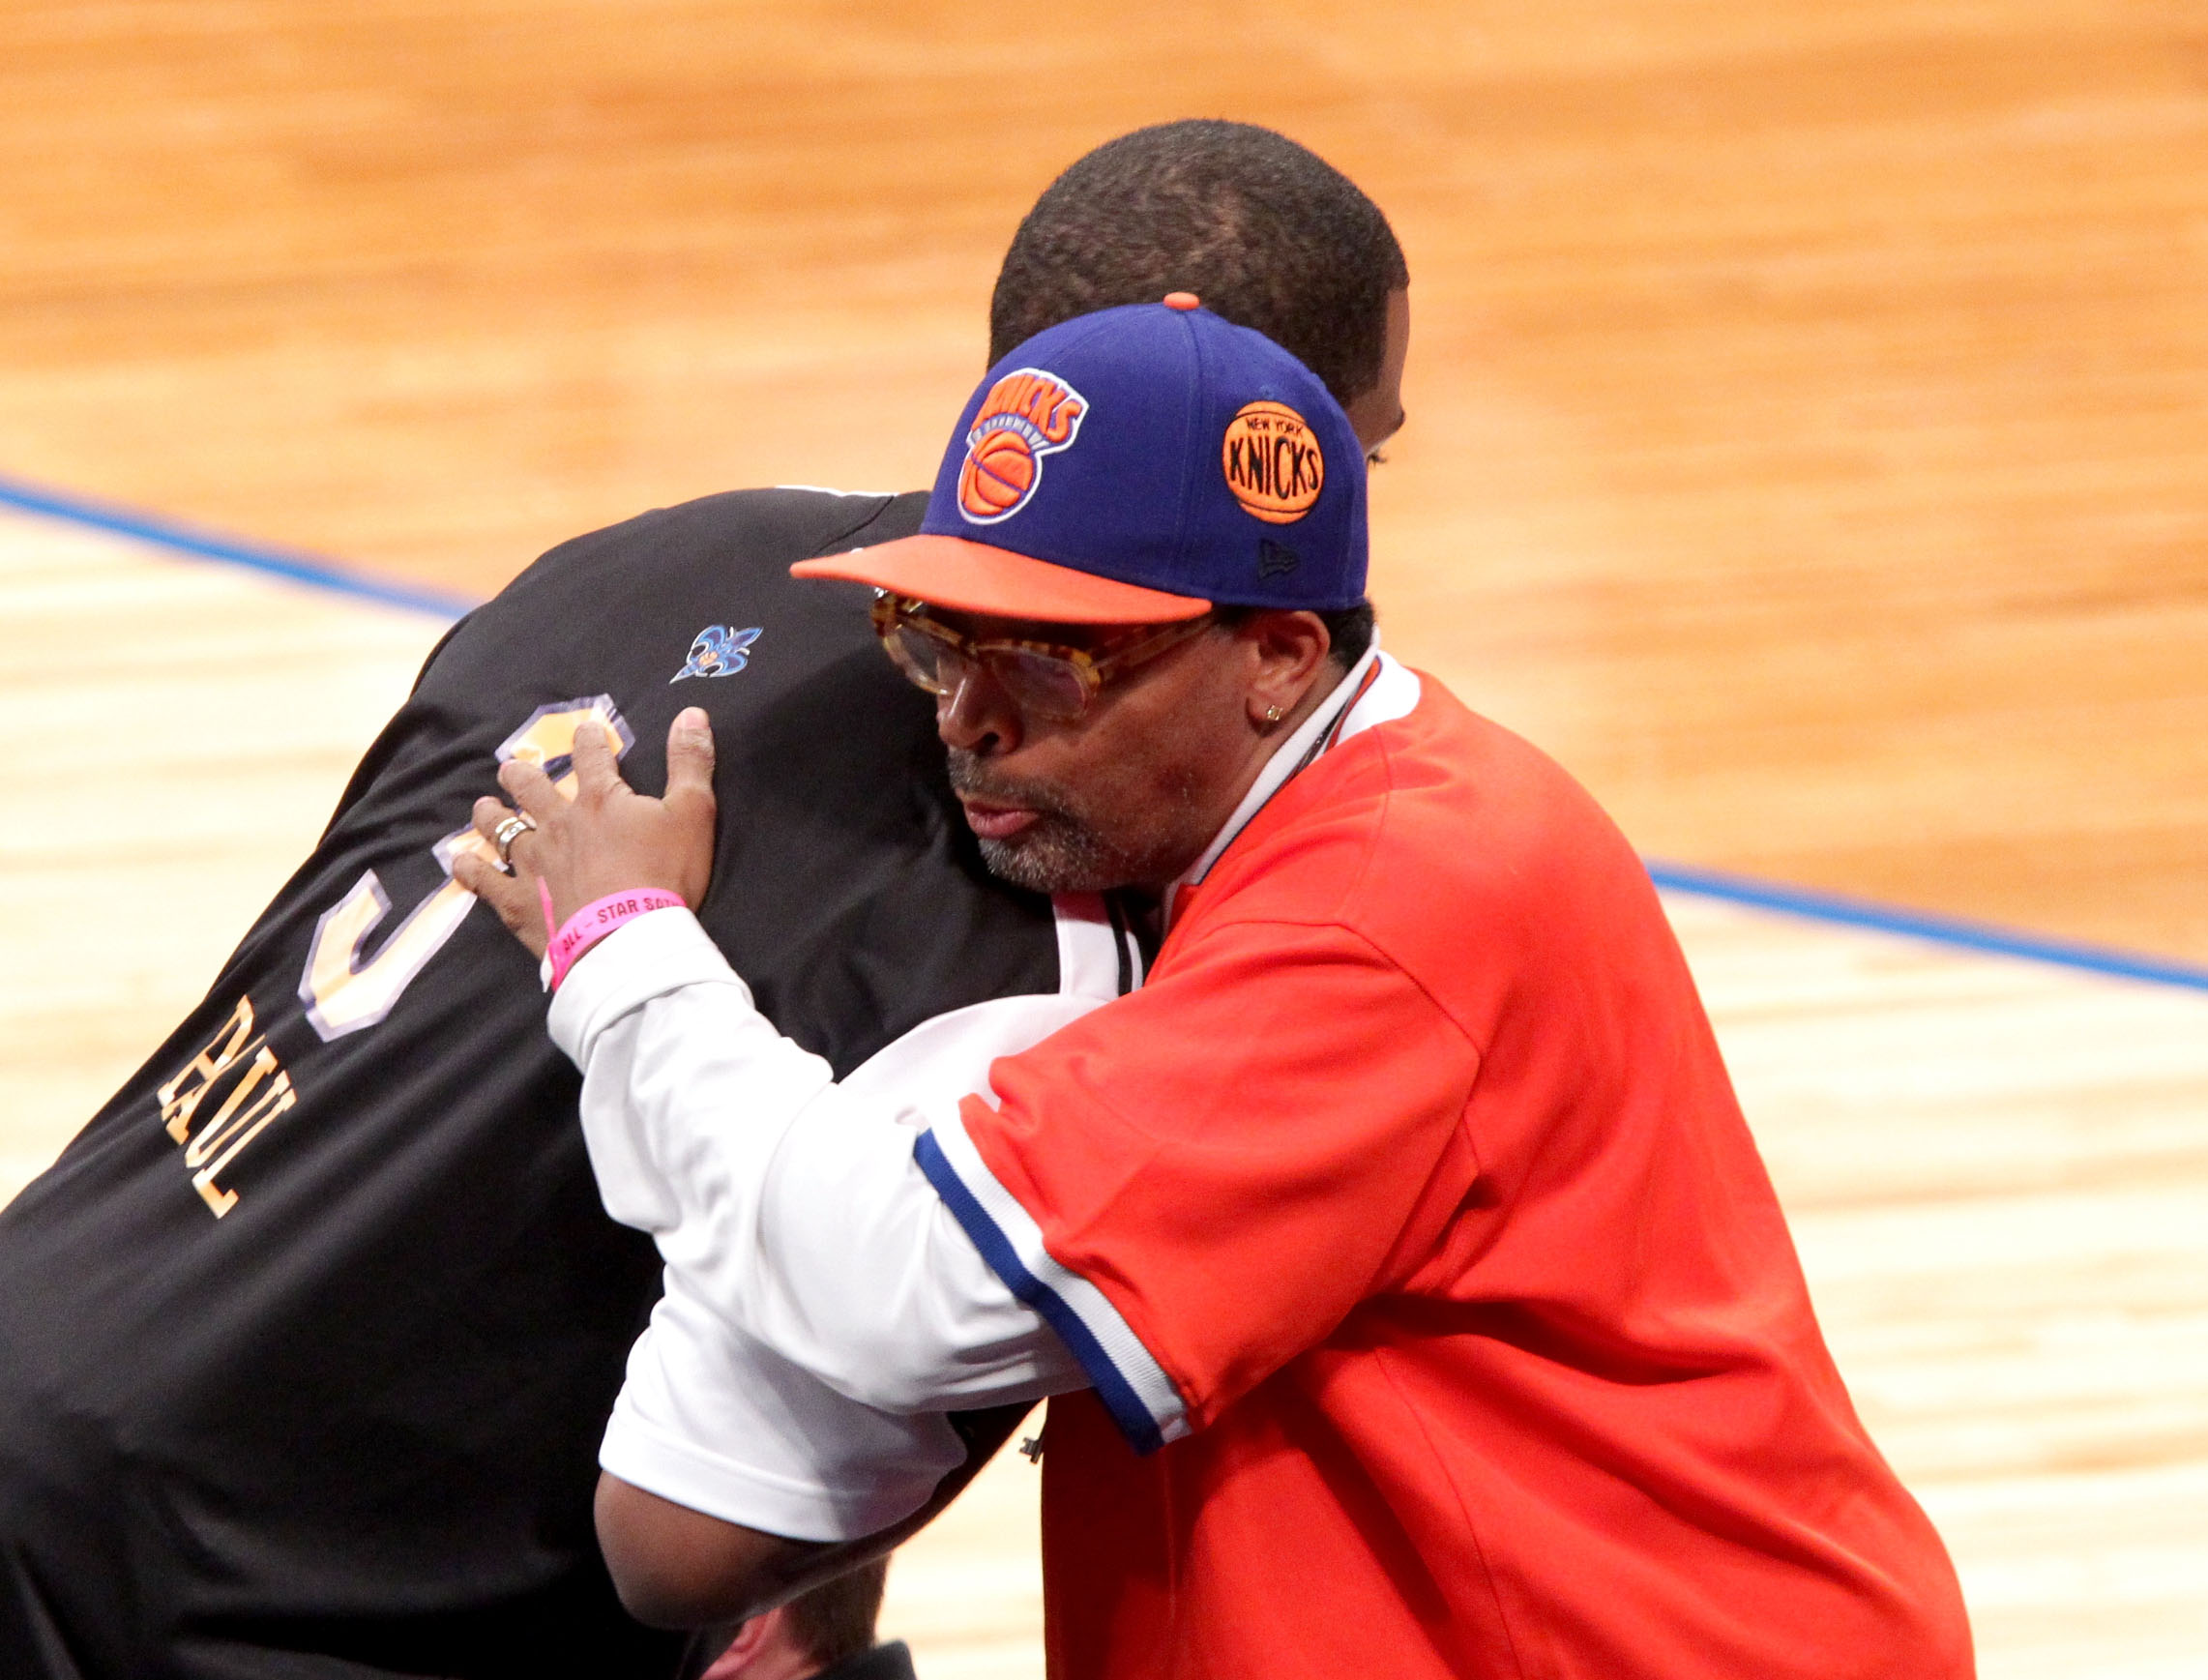 LOS ANGELES, CA - FEBRUARY 19:  NBA player for the New Orleans Hornets (L) and director Spike Lee hug during NBA All-Star Saturday night presented by State Farm at Staples Center on February 19, 2011 in Los Angeles, California.  (Photo by Noel Vasquez/Get